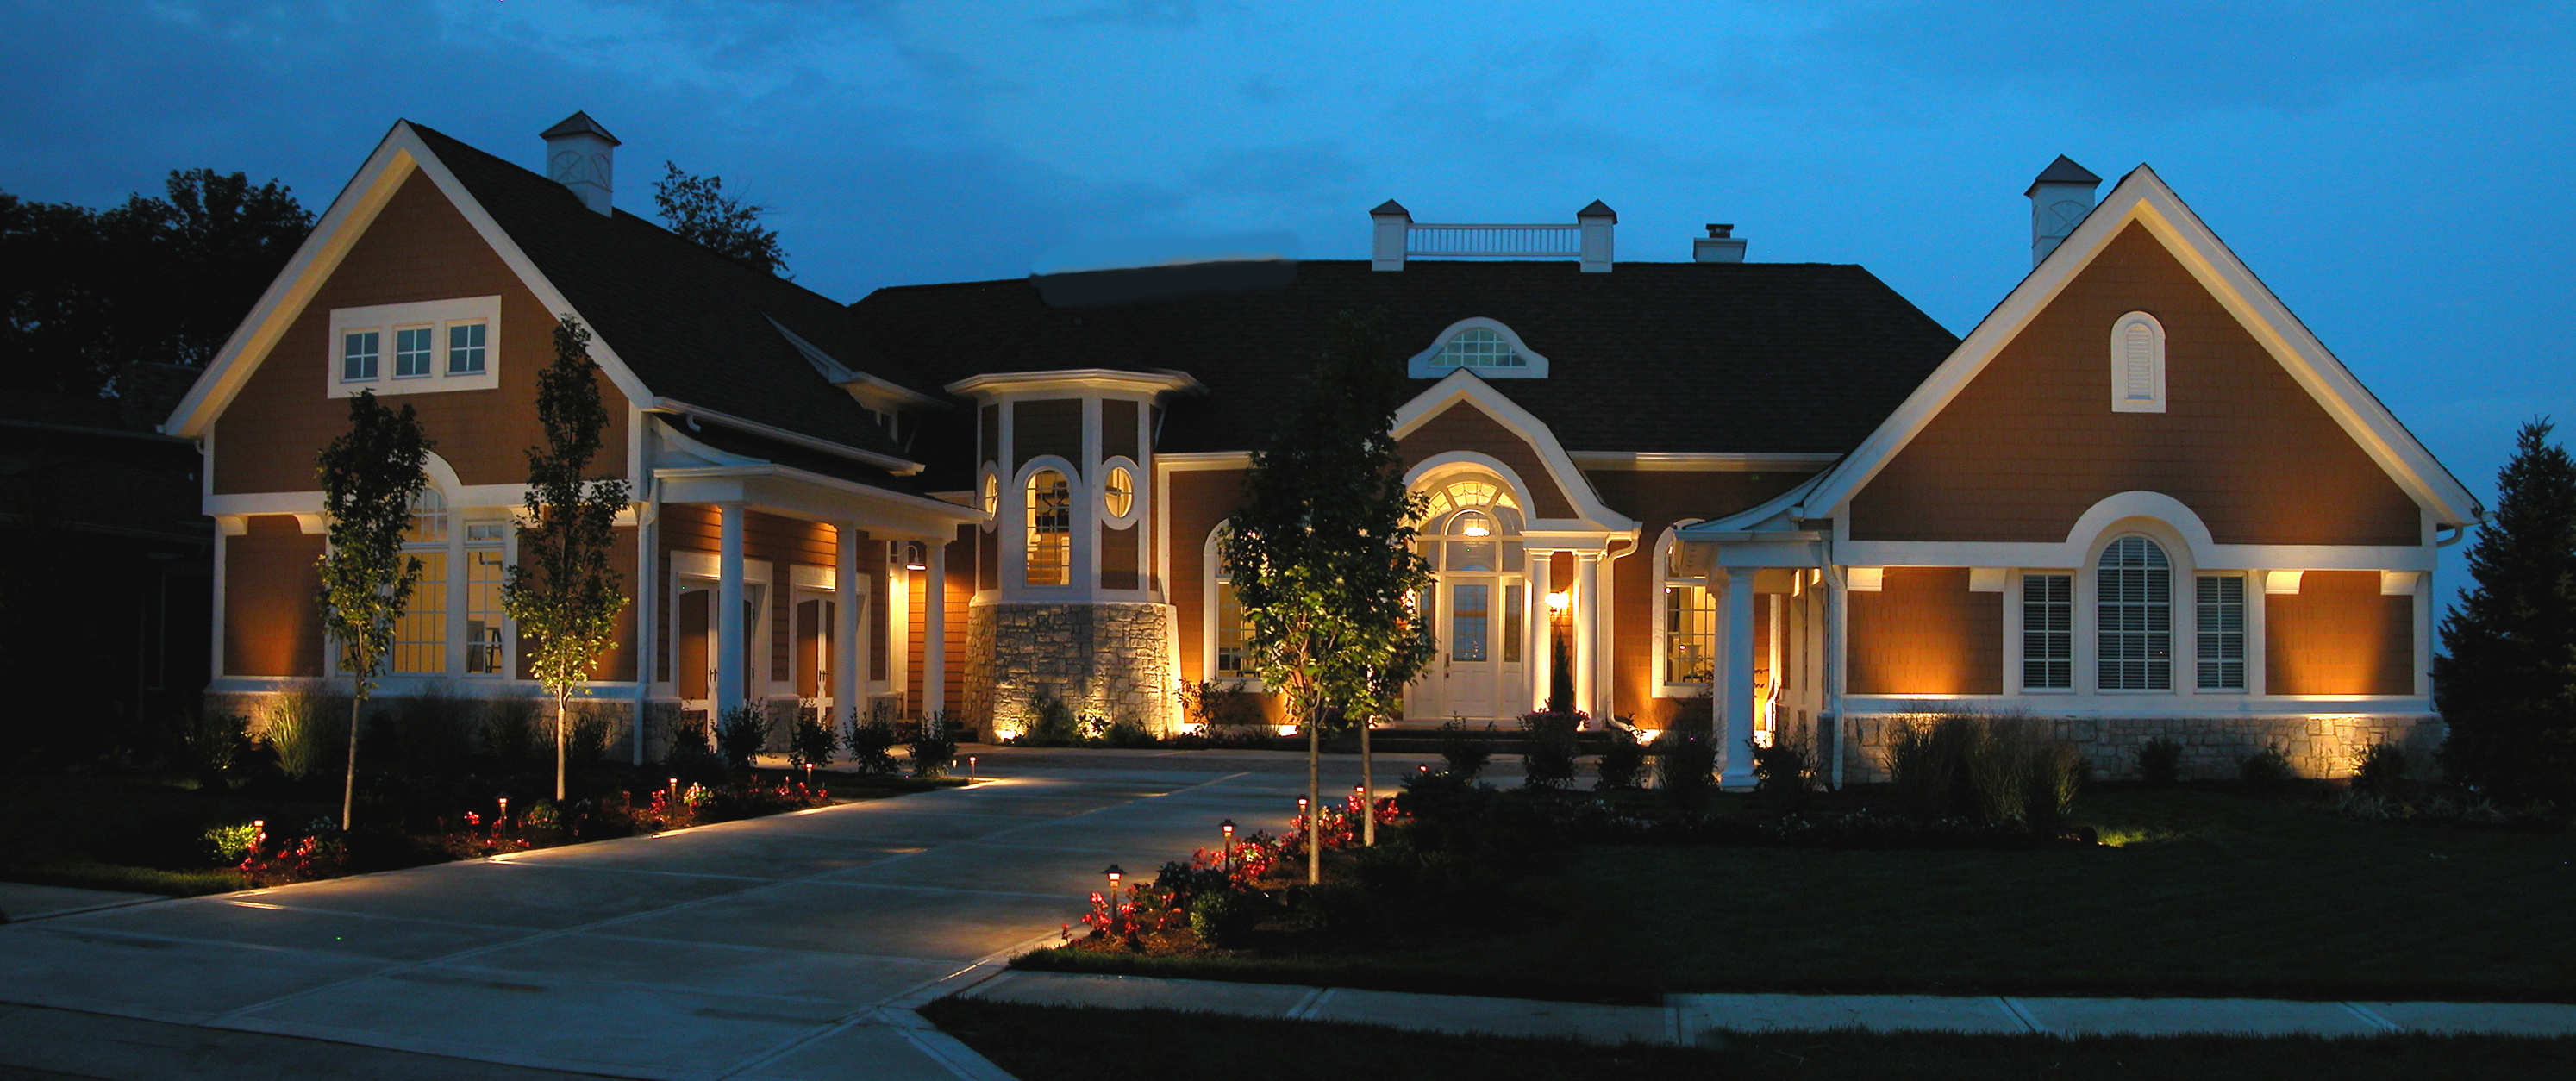 Landscape Lighting Minneapolis Part - 35: Professional, Innovative, Responsible Outdoor Lighting Design